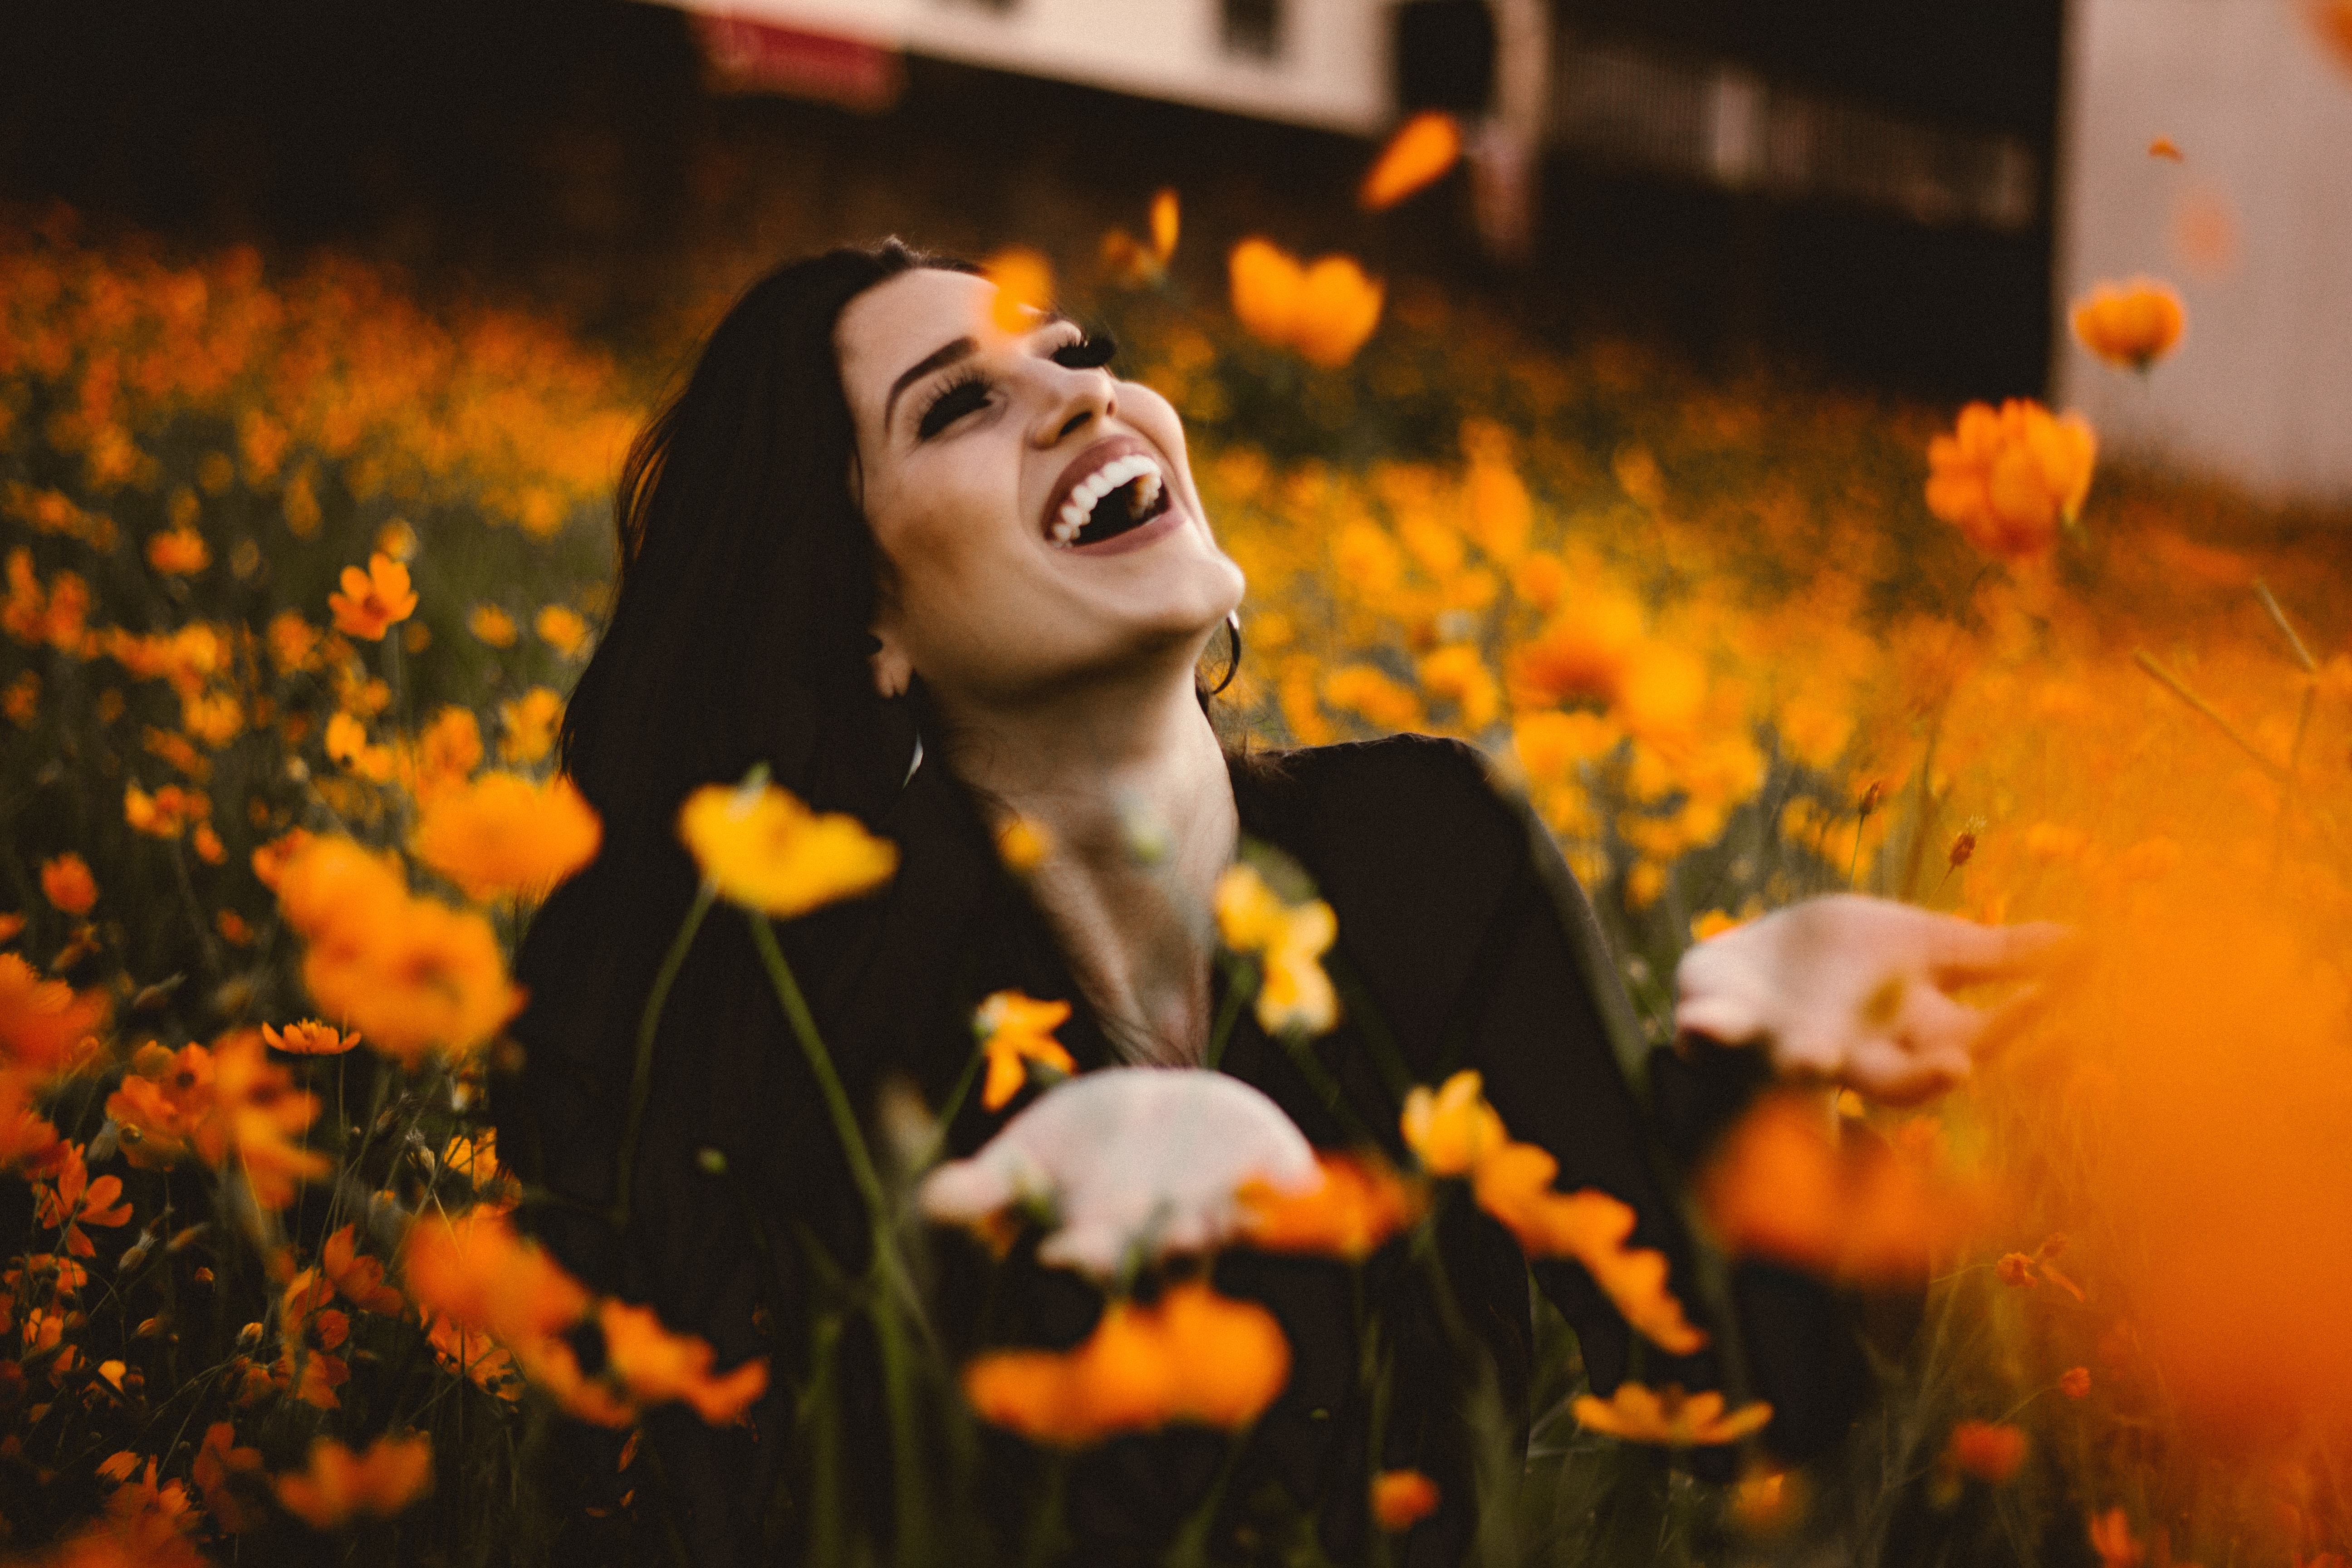 A woman wearing a huge smile while sitting in a field of orange flowers.